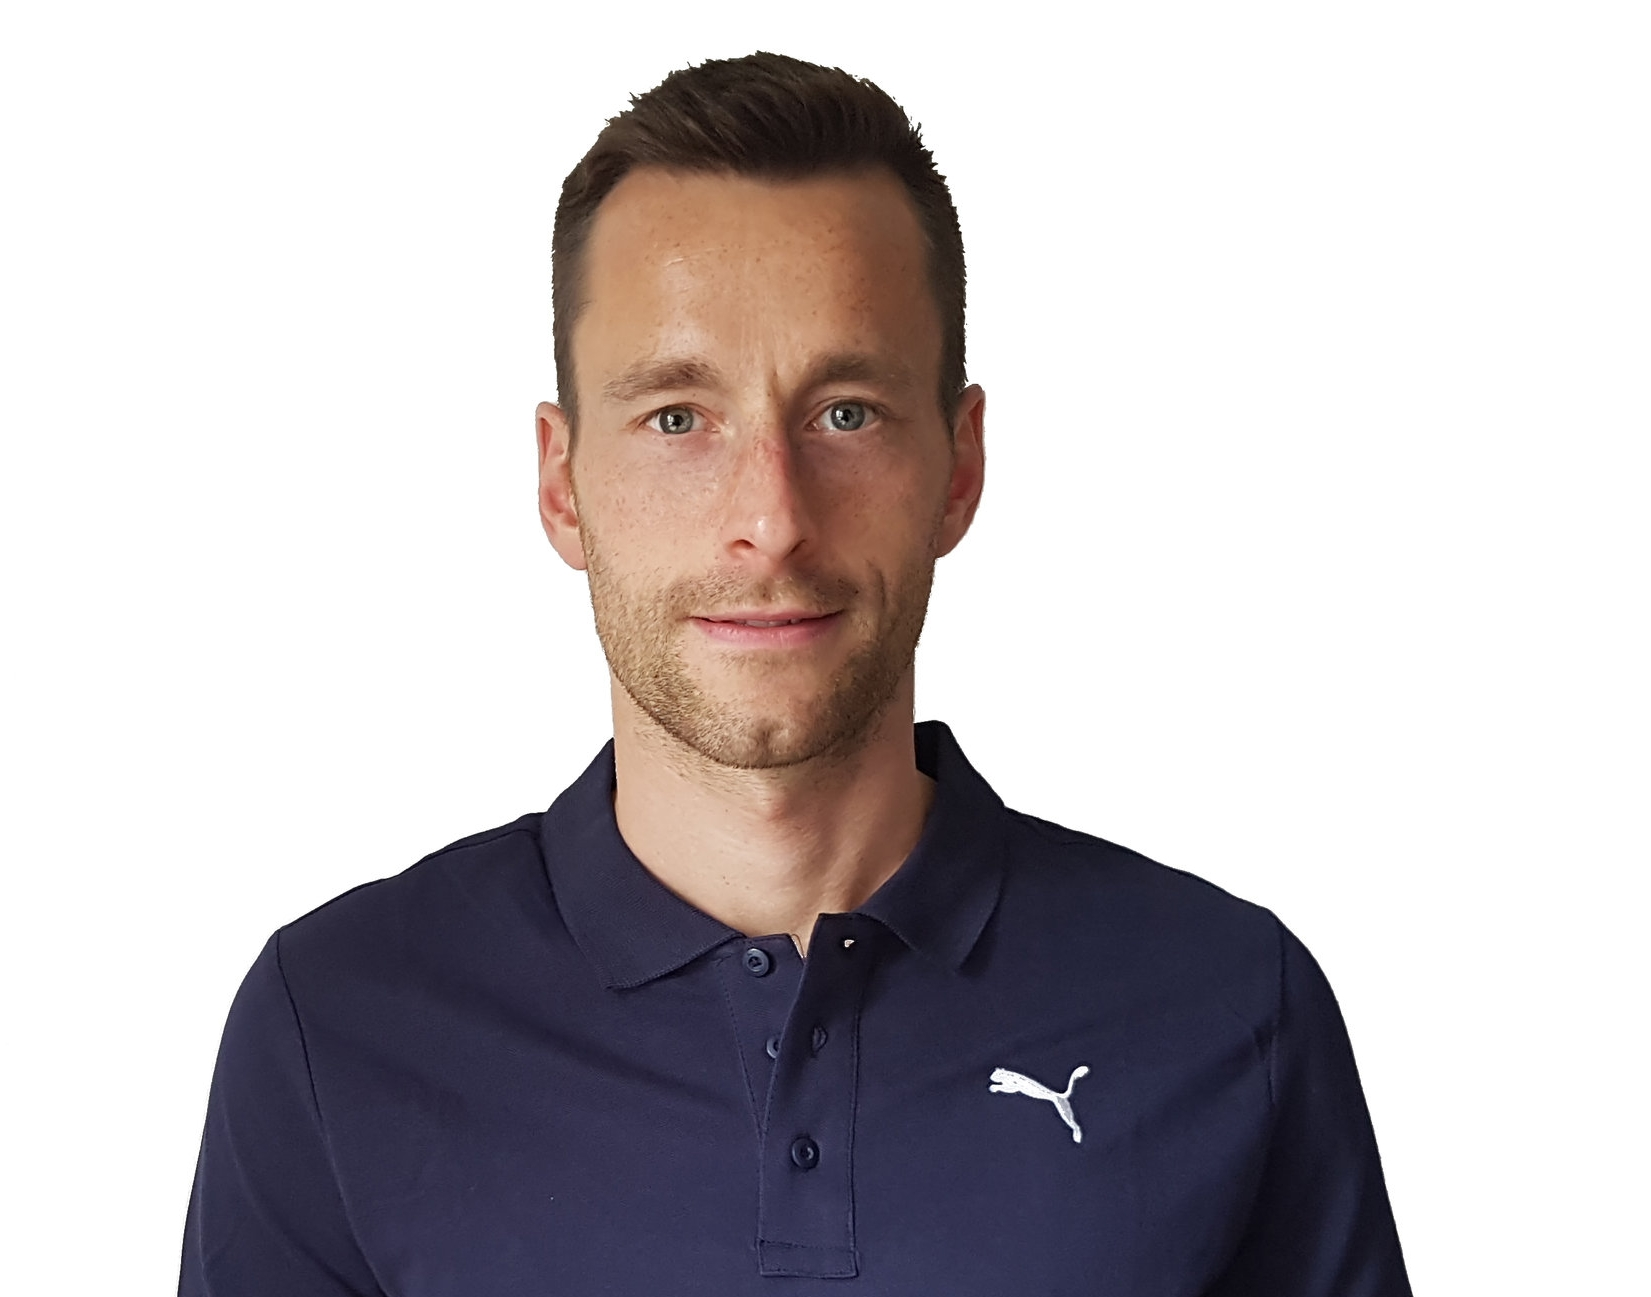 Jan Weinhart - Jan quit his job in management at Telefónica o2 in 2013, took a 10-month trip around the world and then decided to do only the things he enjoys 100%.So he set up his own business in 2015 and since then has been working as a sales coach for start-ups and SMEs throughout Germany.